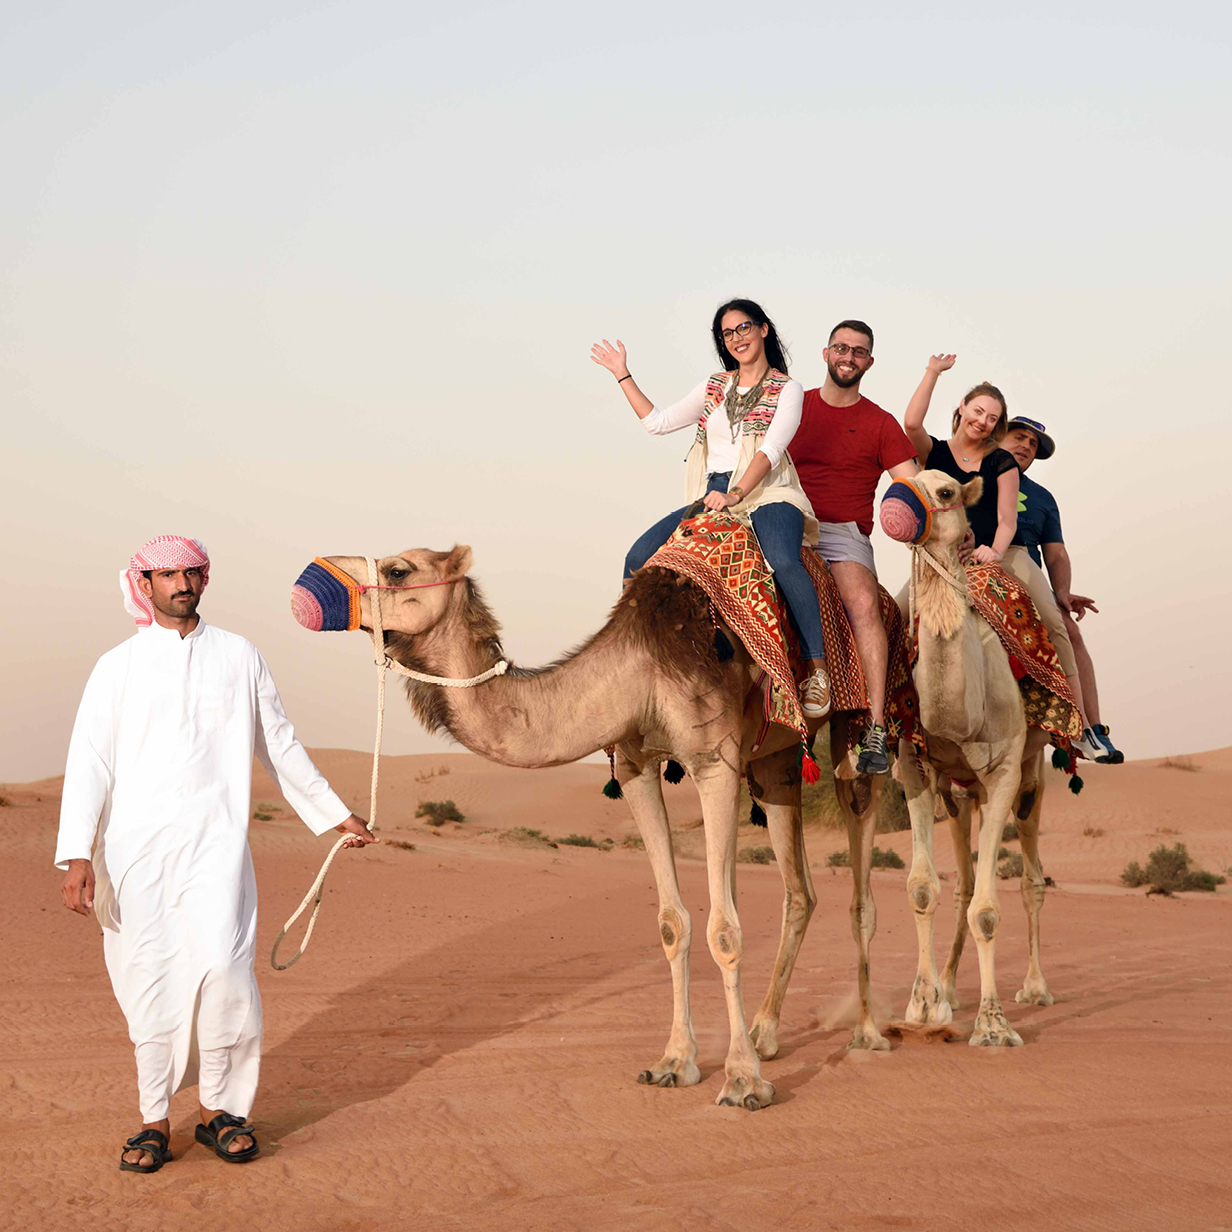 Morning Desert Safari in Dubai Private Vehicle, , large